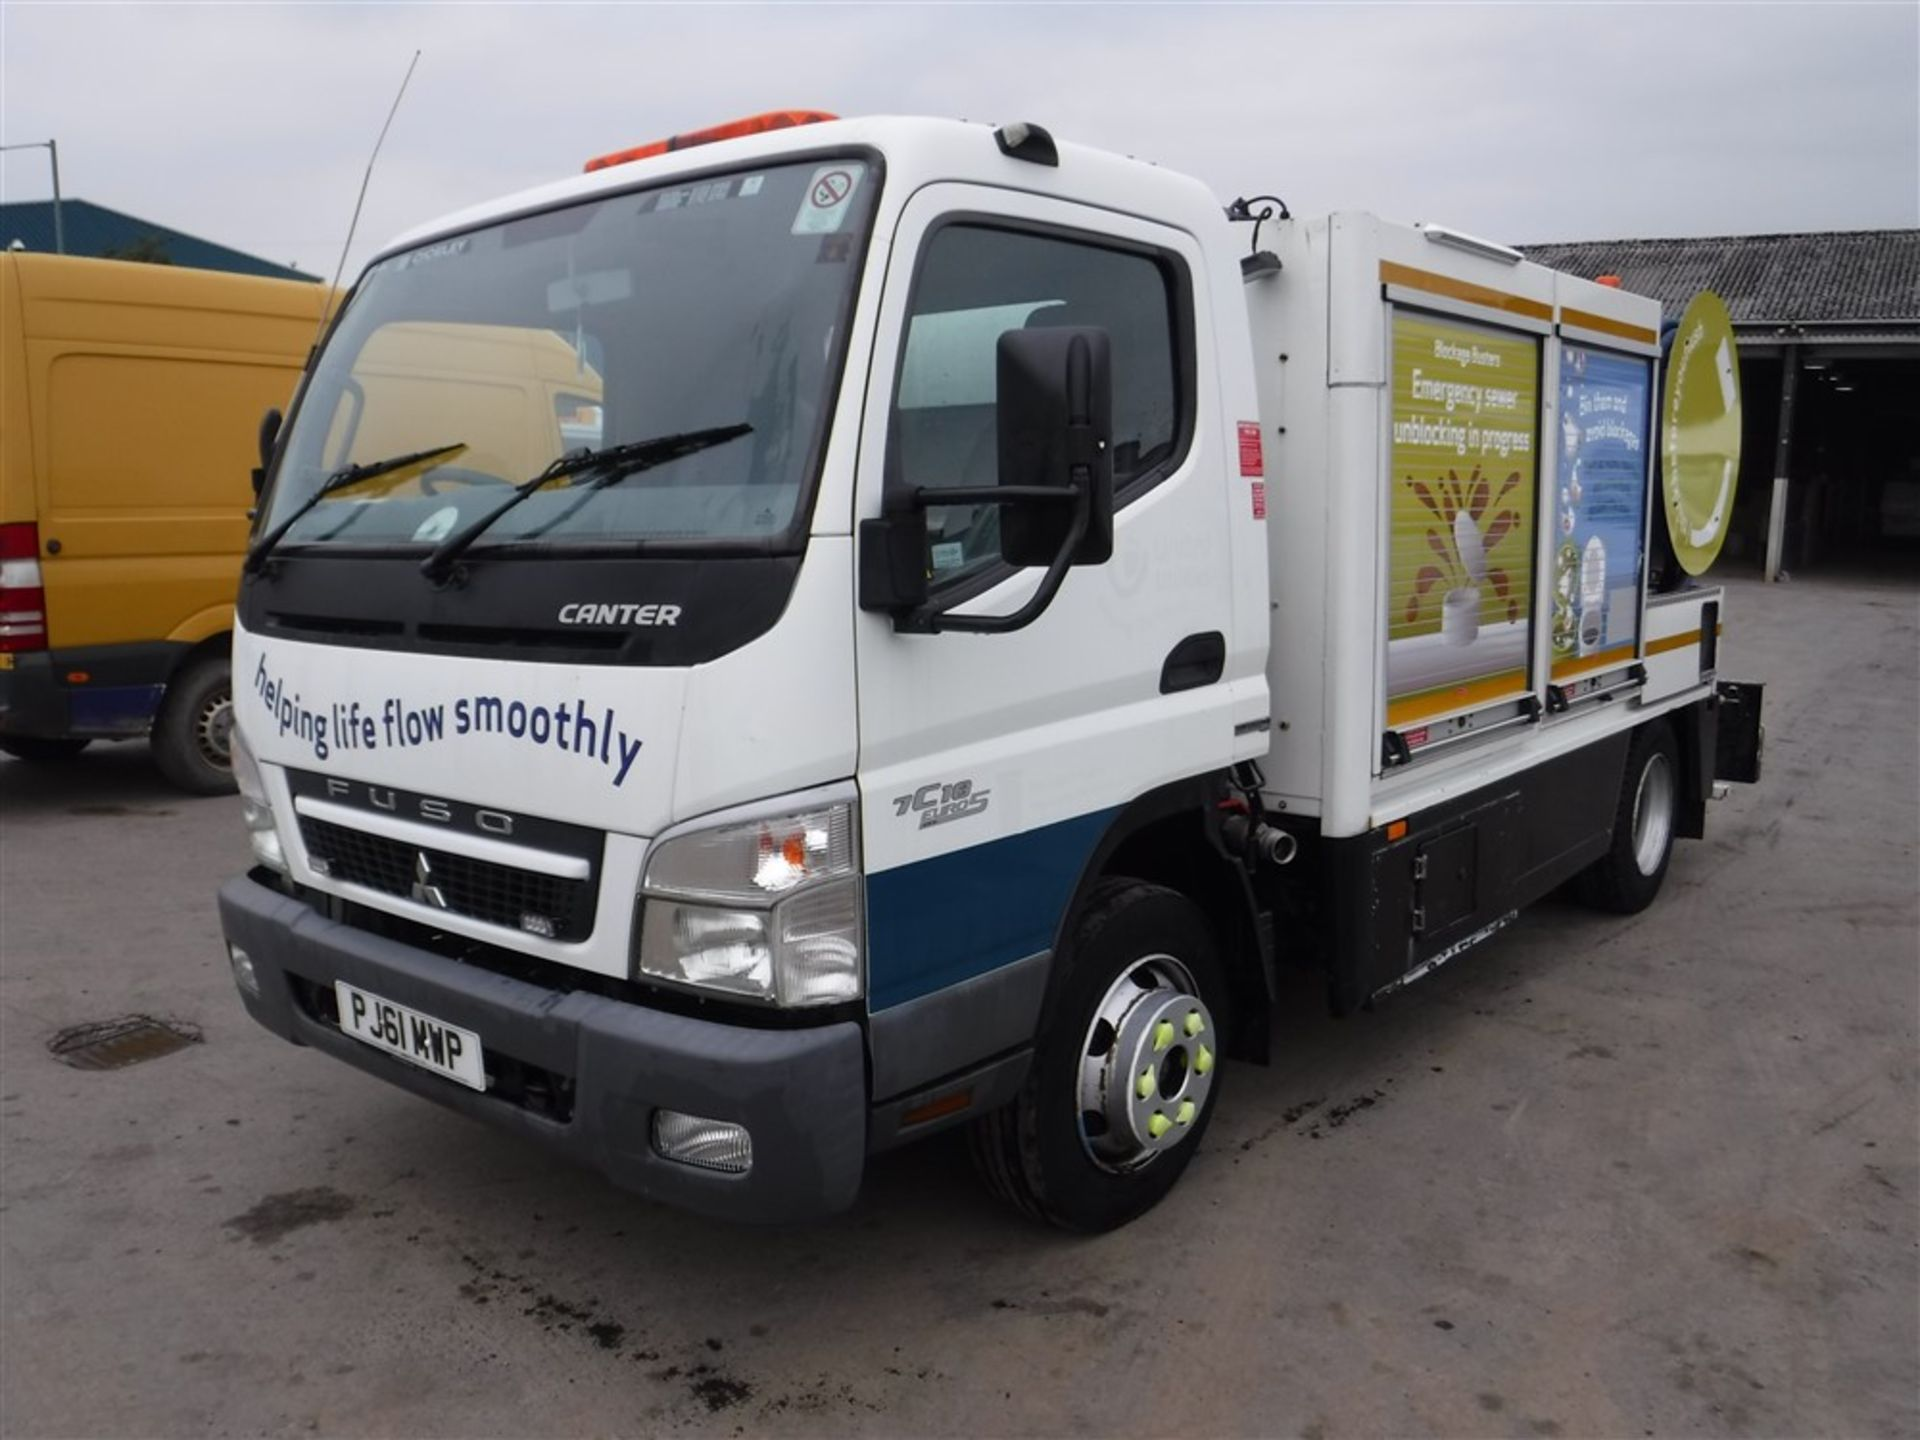 Lot 1216 - 61 reg MITSUBISHI FUSO CANTER 7C18 JET VAC TANKER (DIRECT UNITED UTILITIES) 1ST REG 02/12, 92441M,